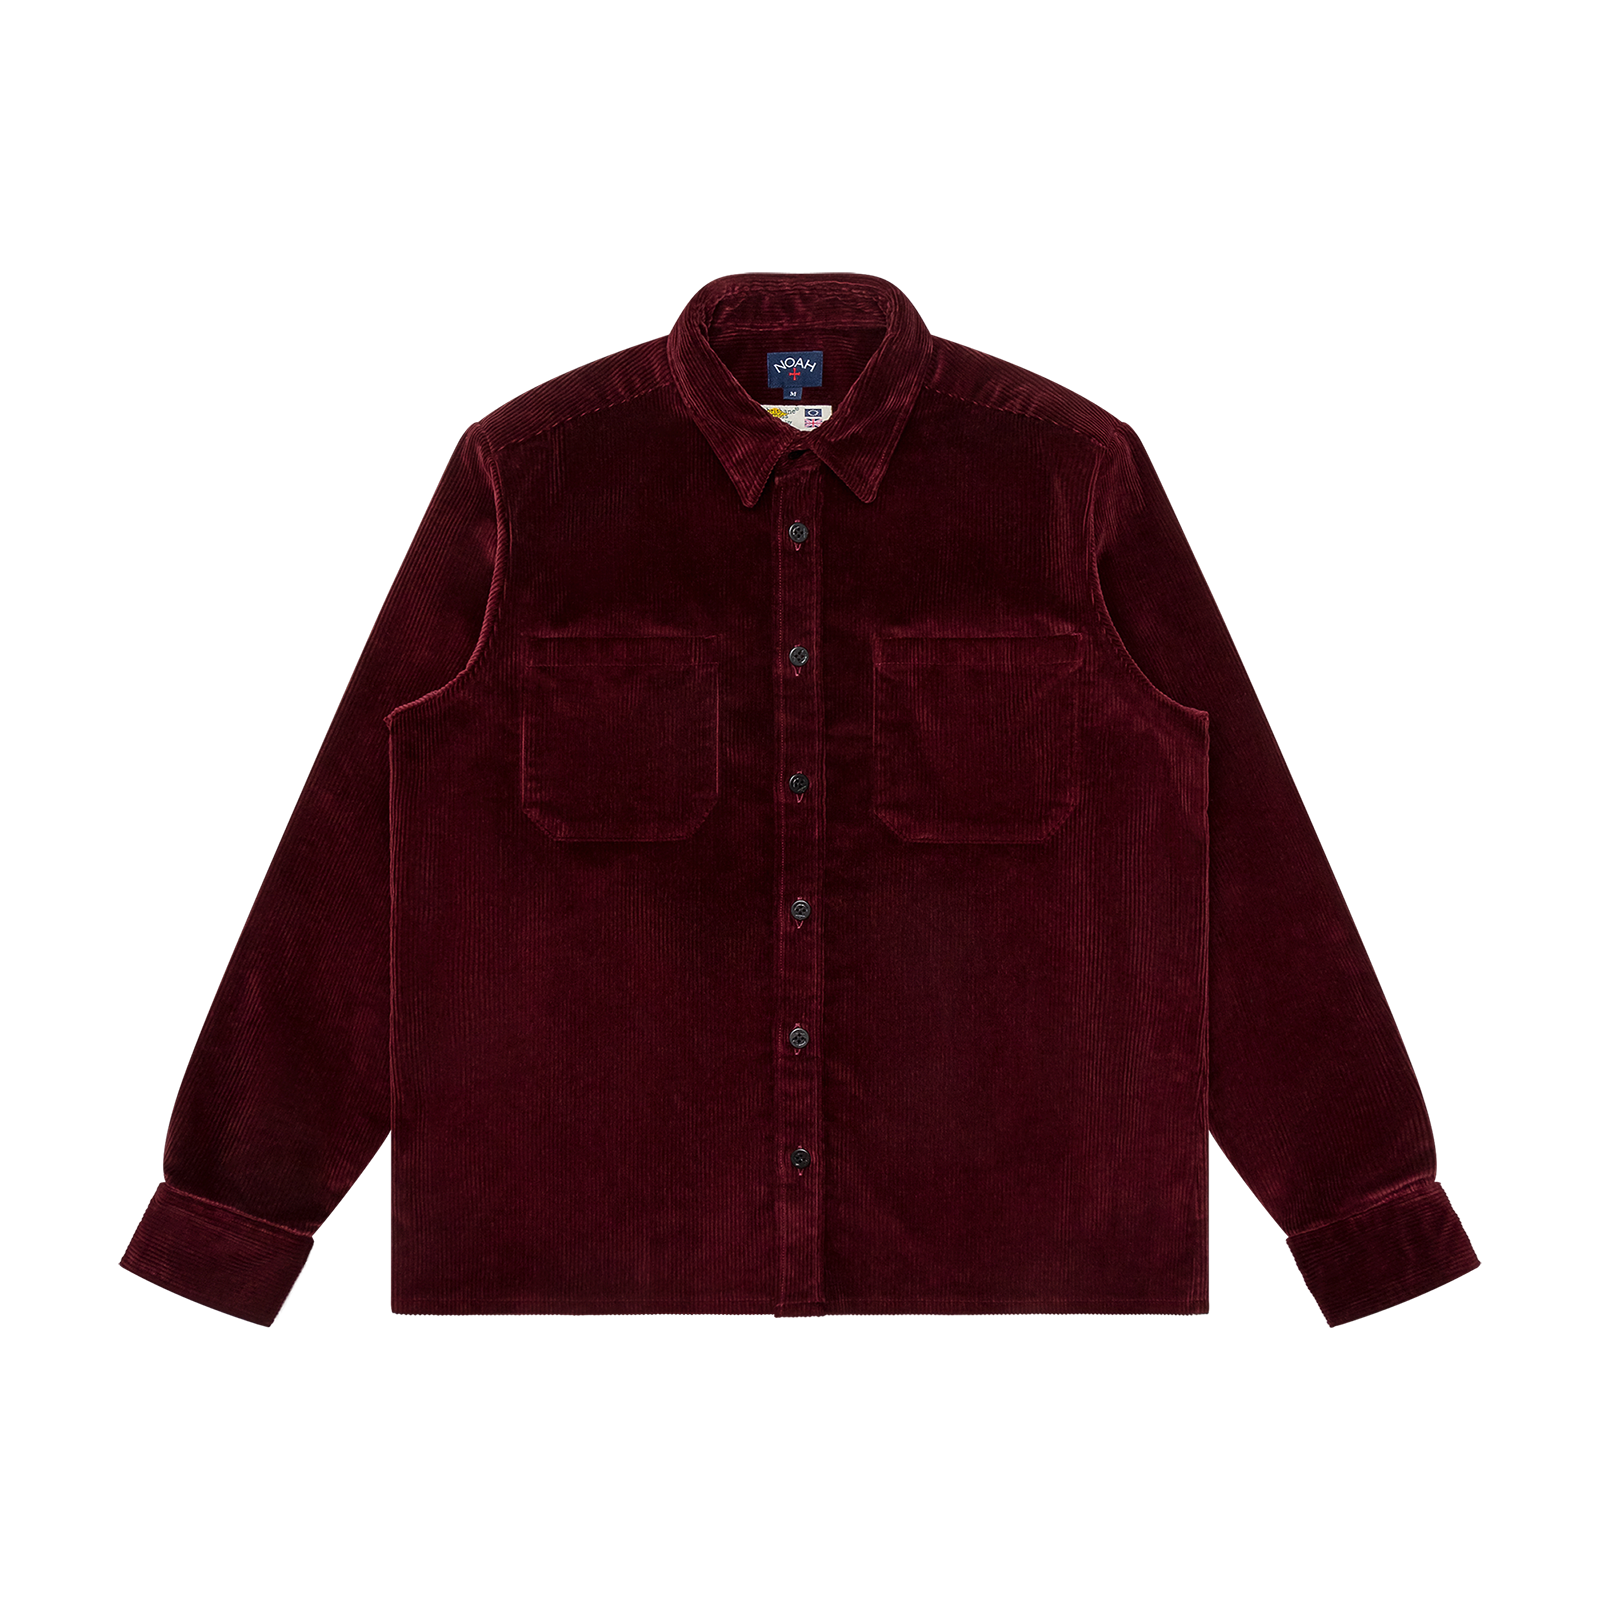 Velour jacket product photo